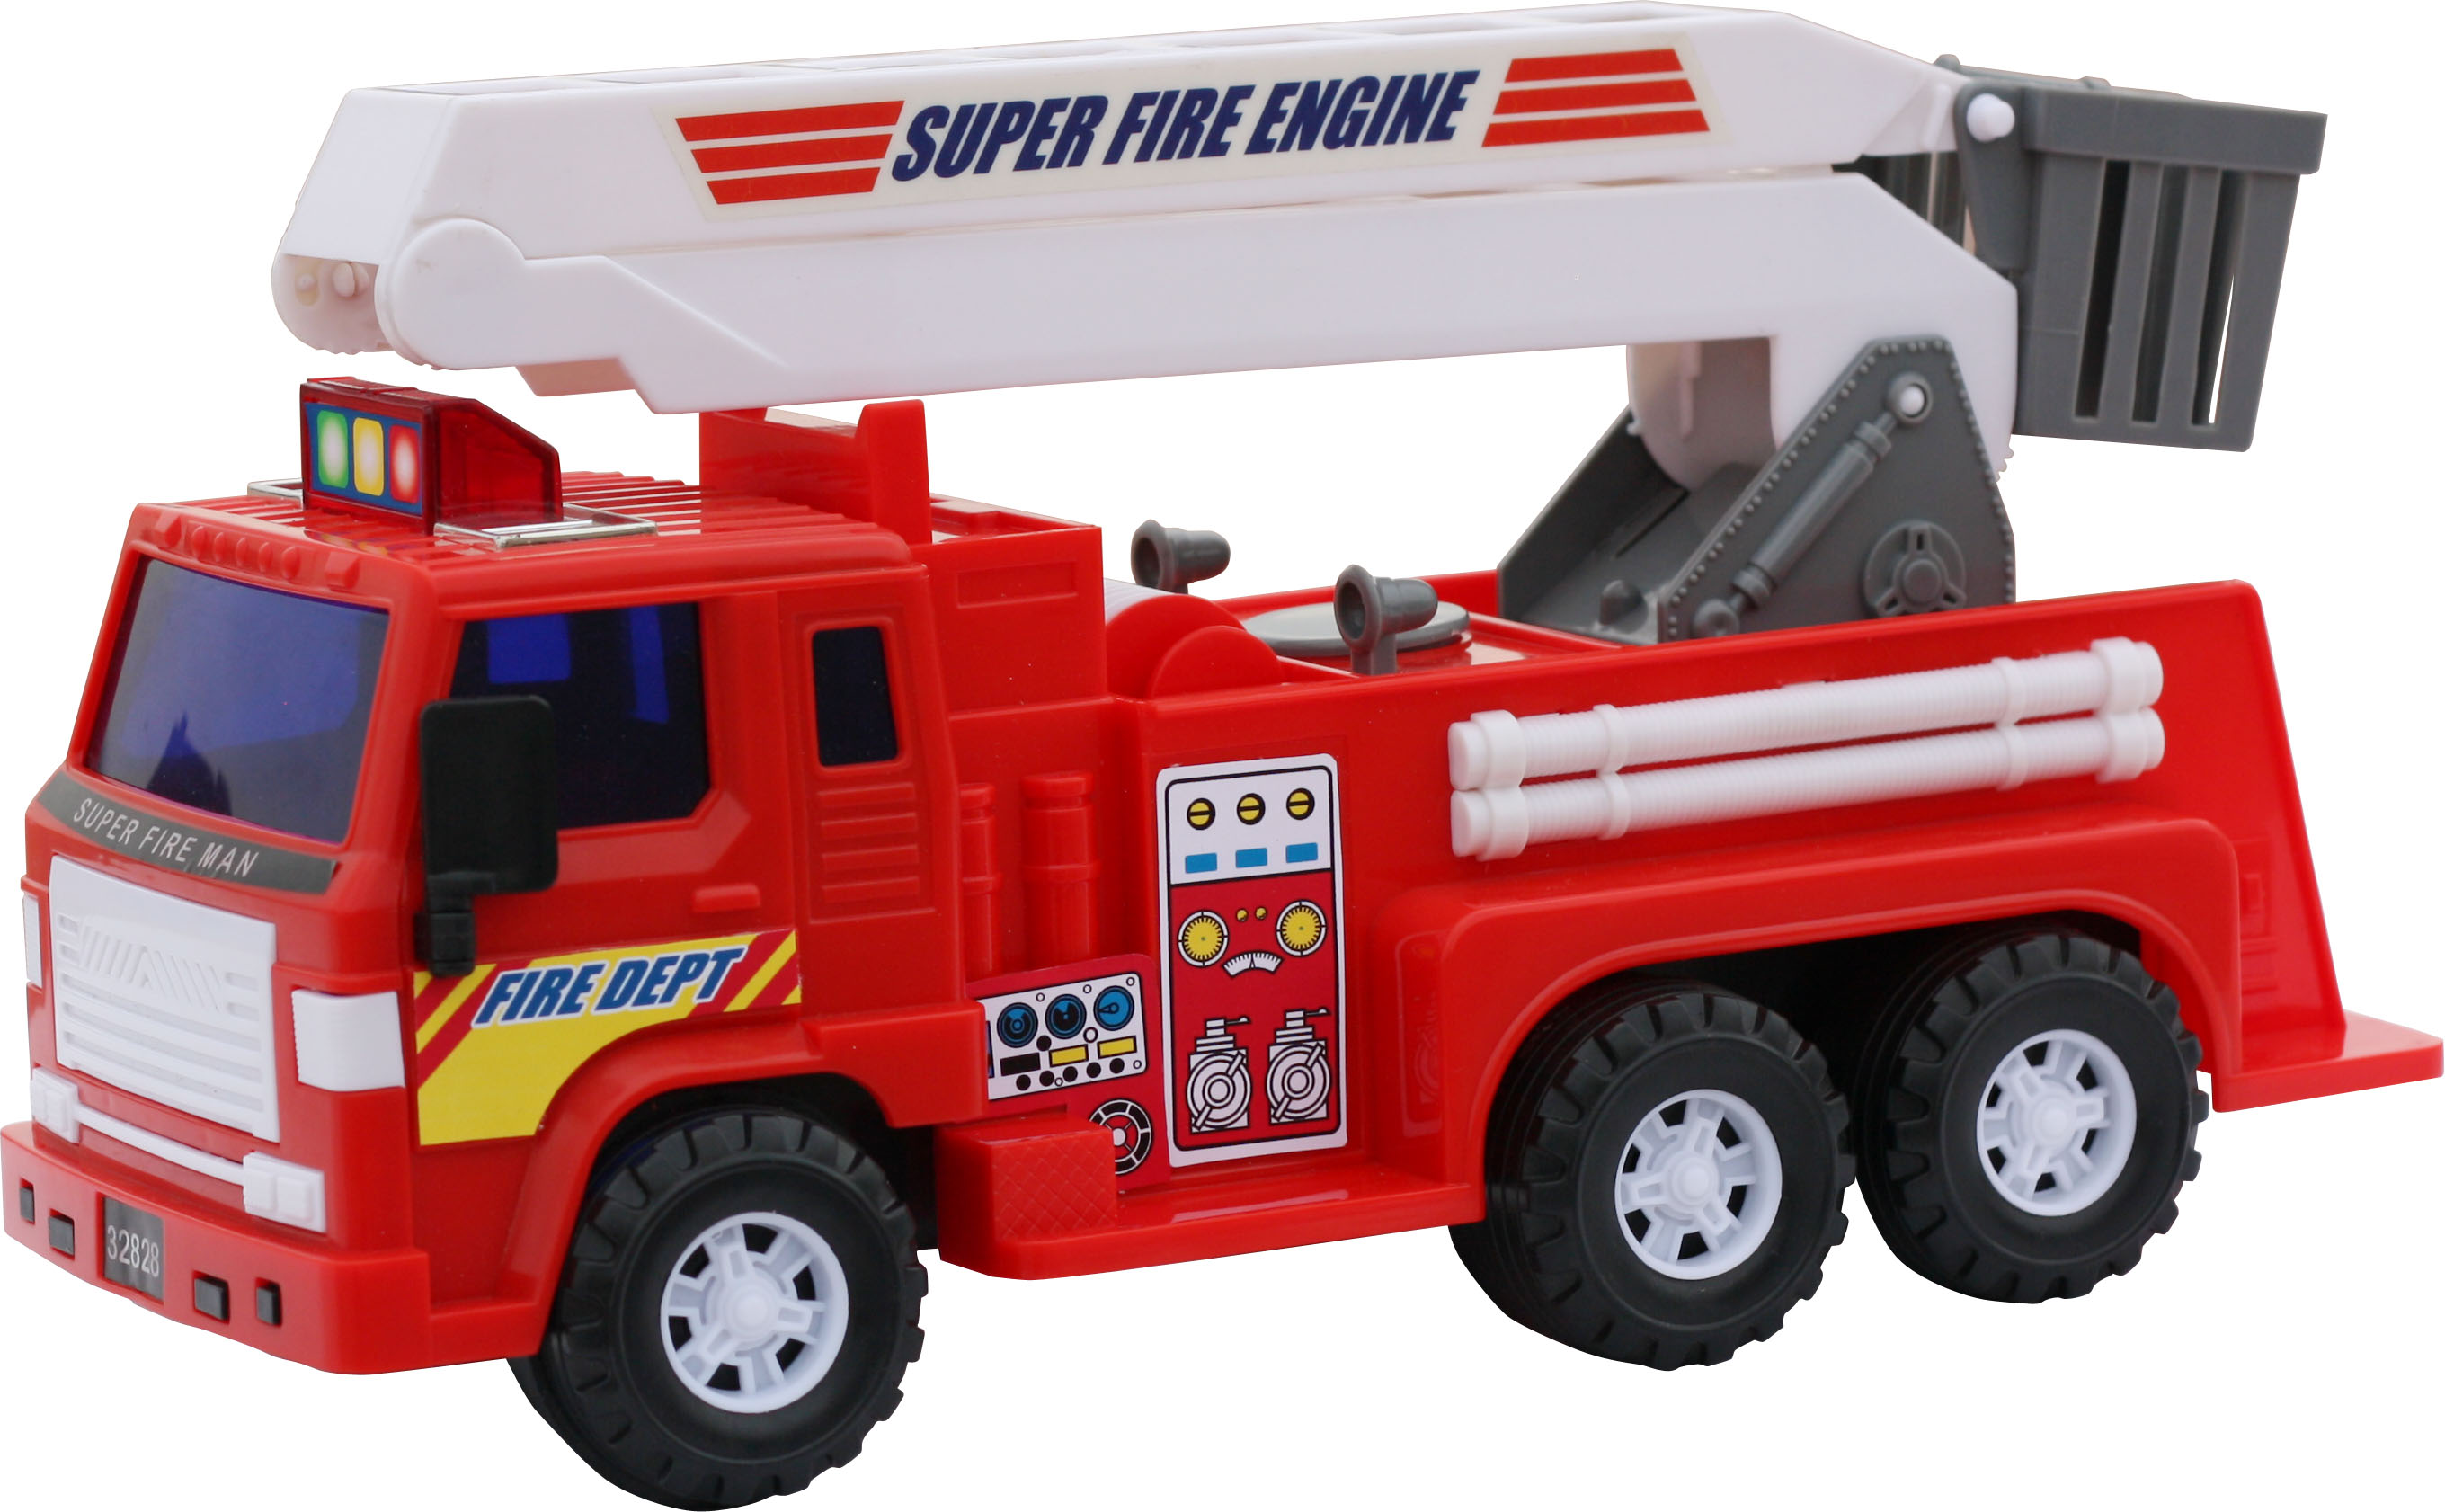 2720x1682 Large Fire Engine Truck Glopo Inc